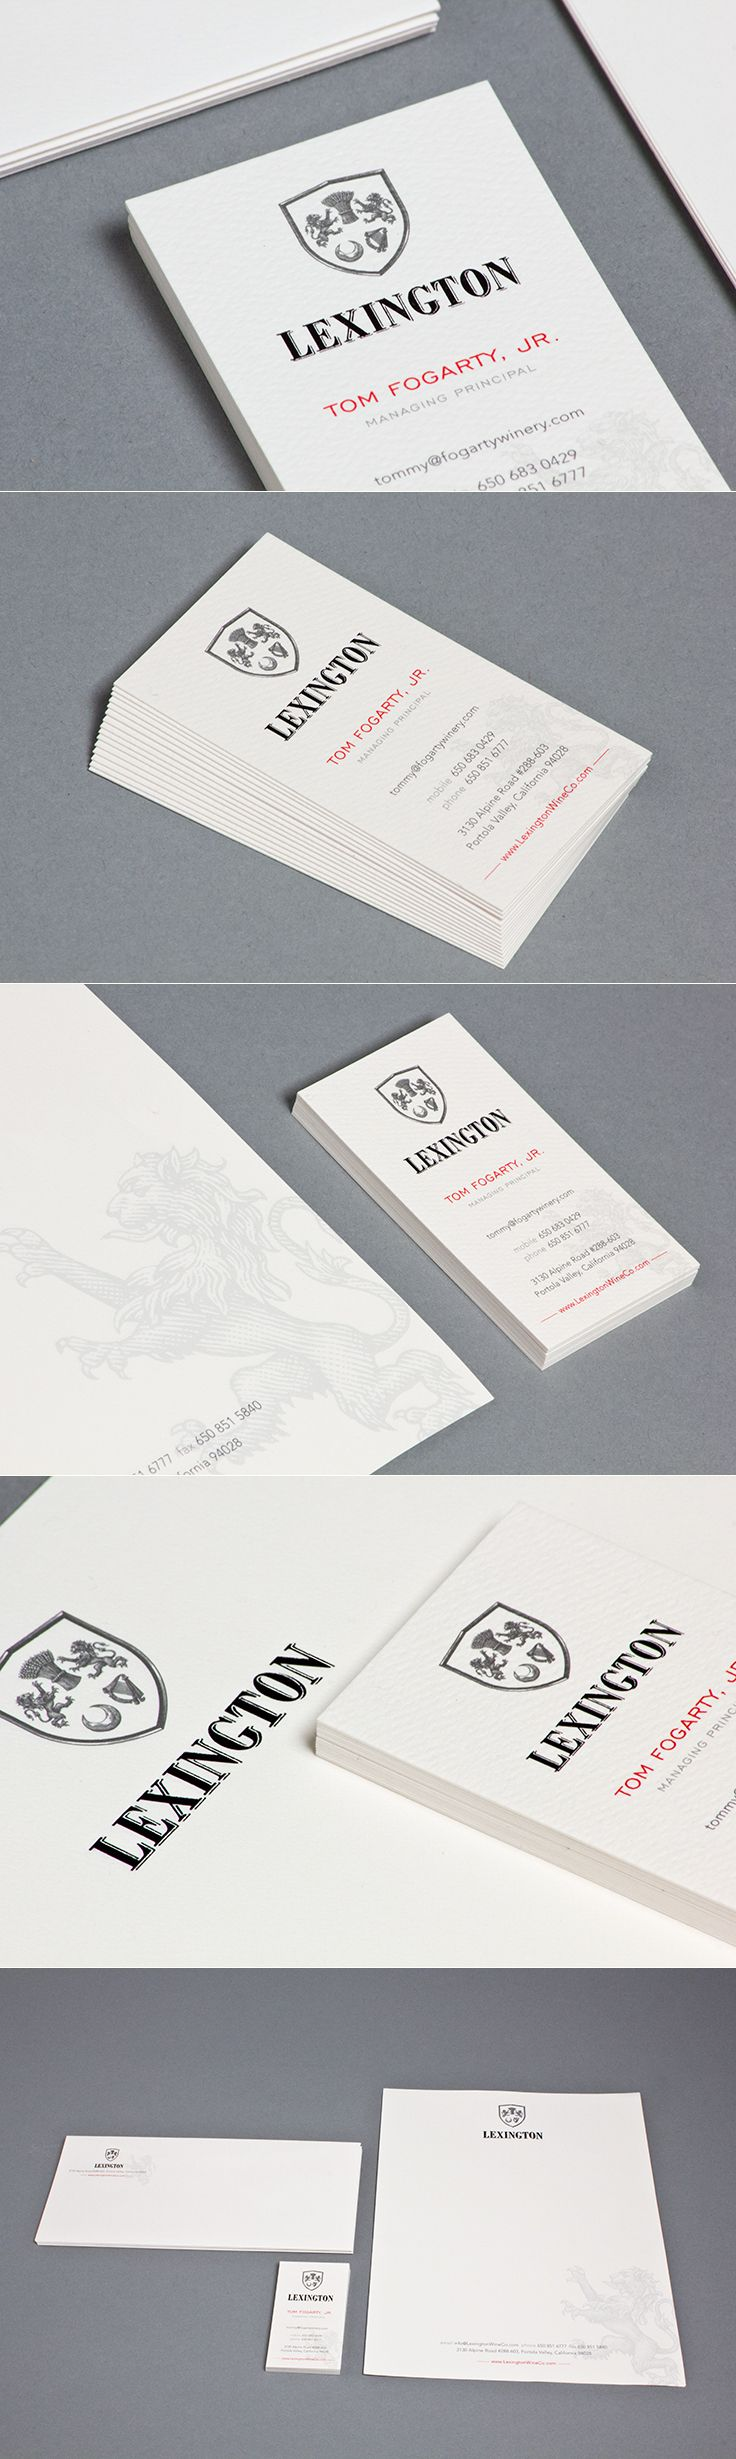 Lexington Wine Co. | Stationery | by designthis!